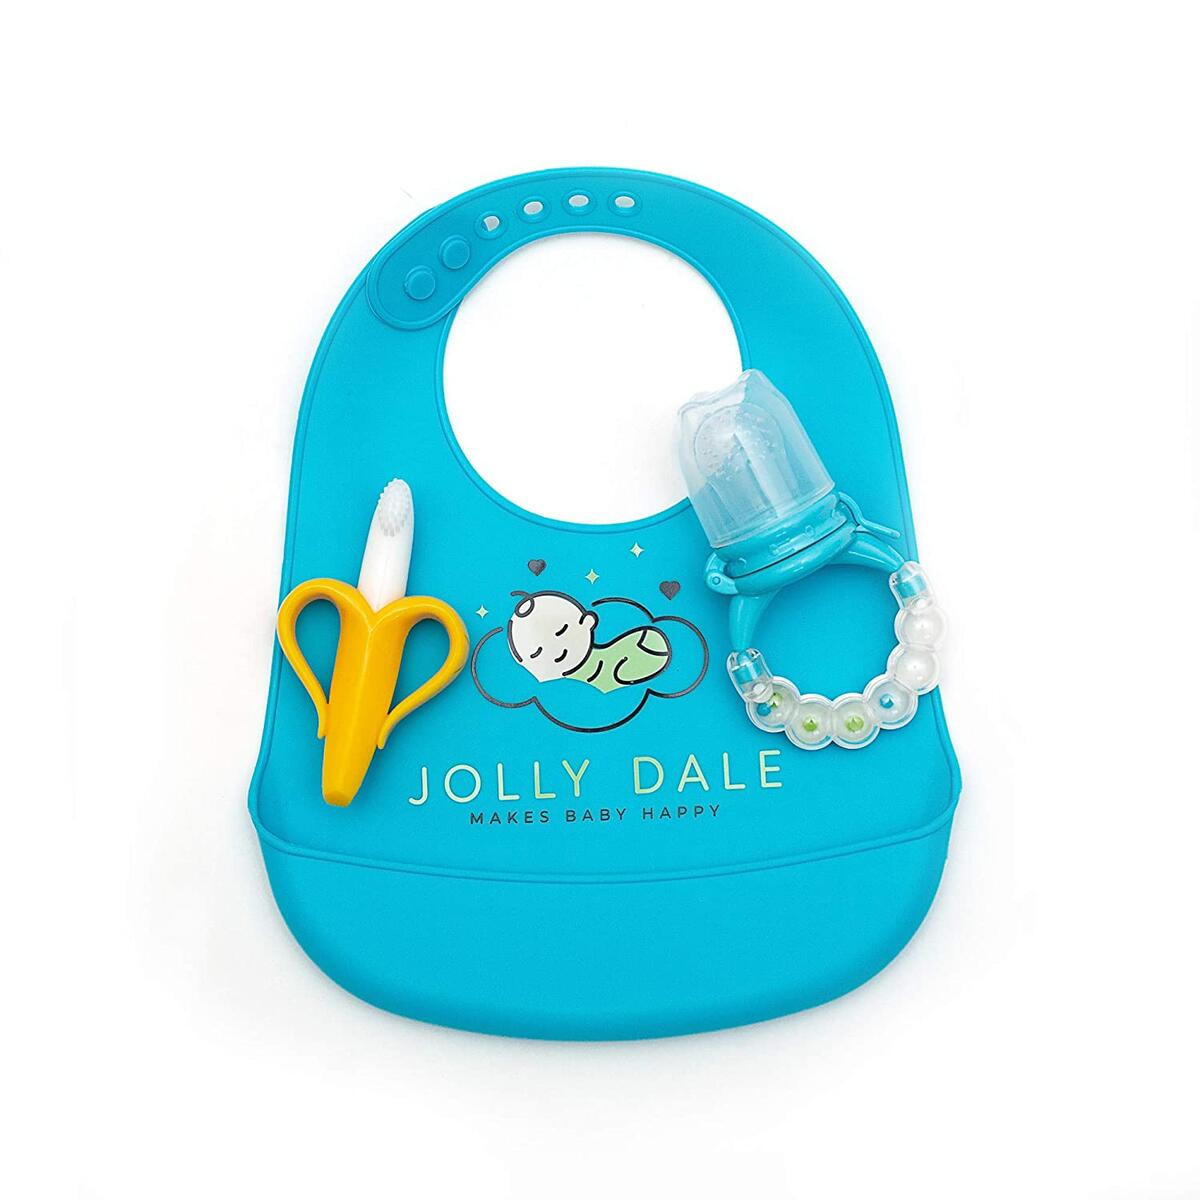 Jolly Dale Baby Teething & Feeding Set with Silicone Baby Bucket Bib, Baby Banana Teether & Baby Mesh Food Feeder Pacifier - Soft, Food-Grade Silicone - Perfect Teether Kit for Babies & Toddlers